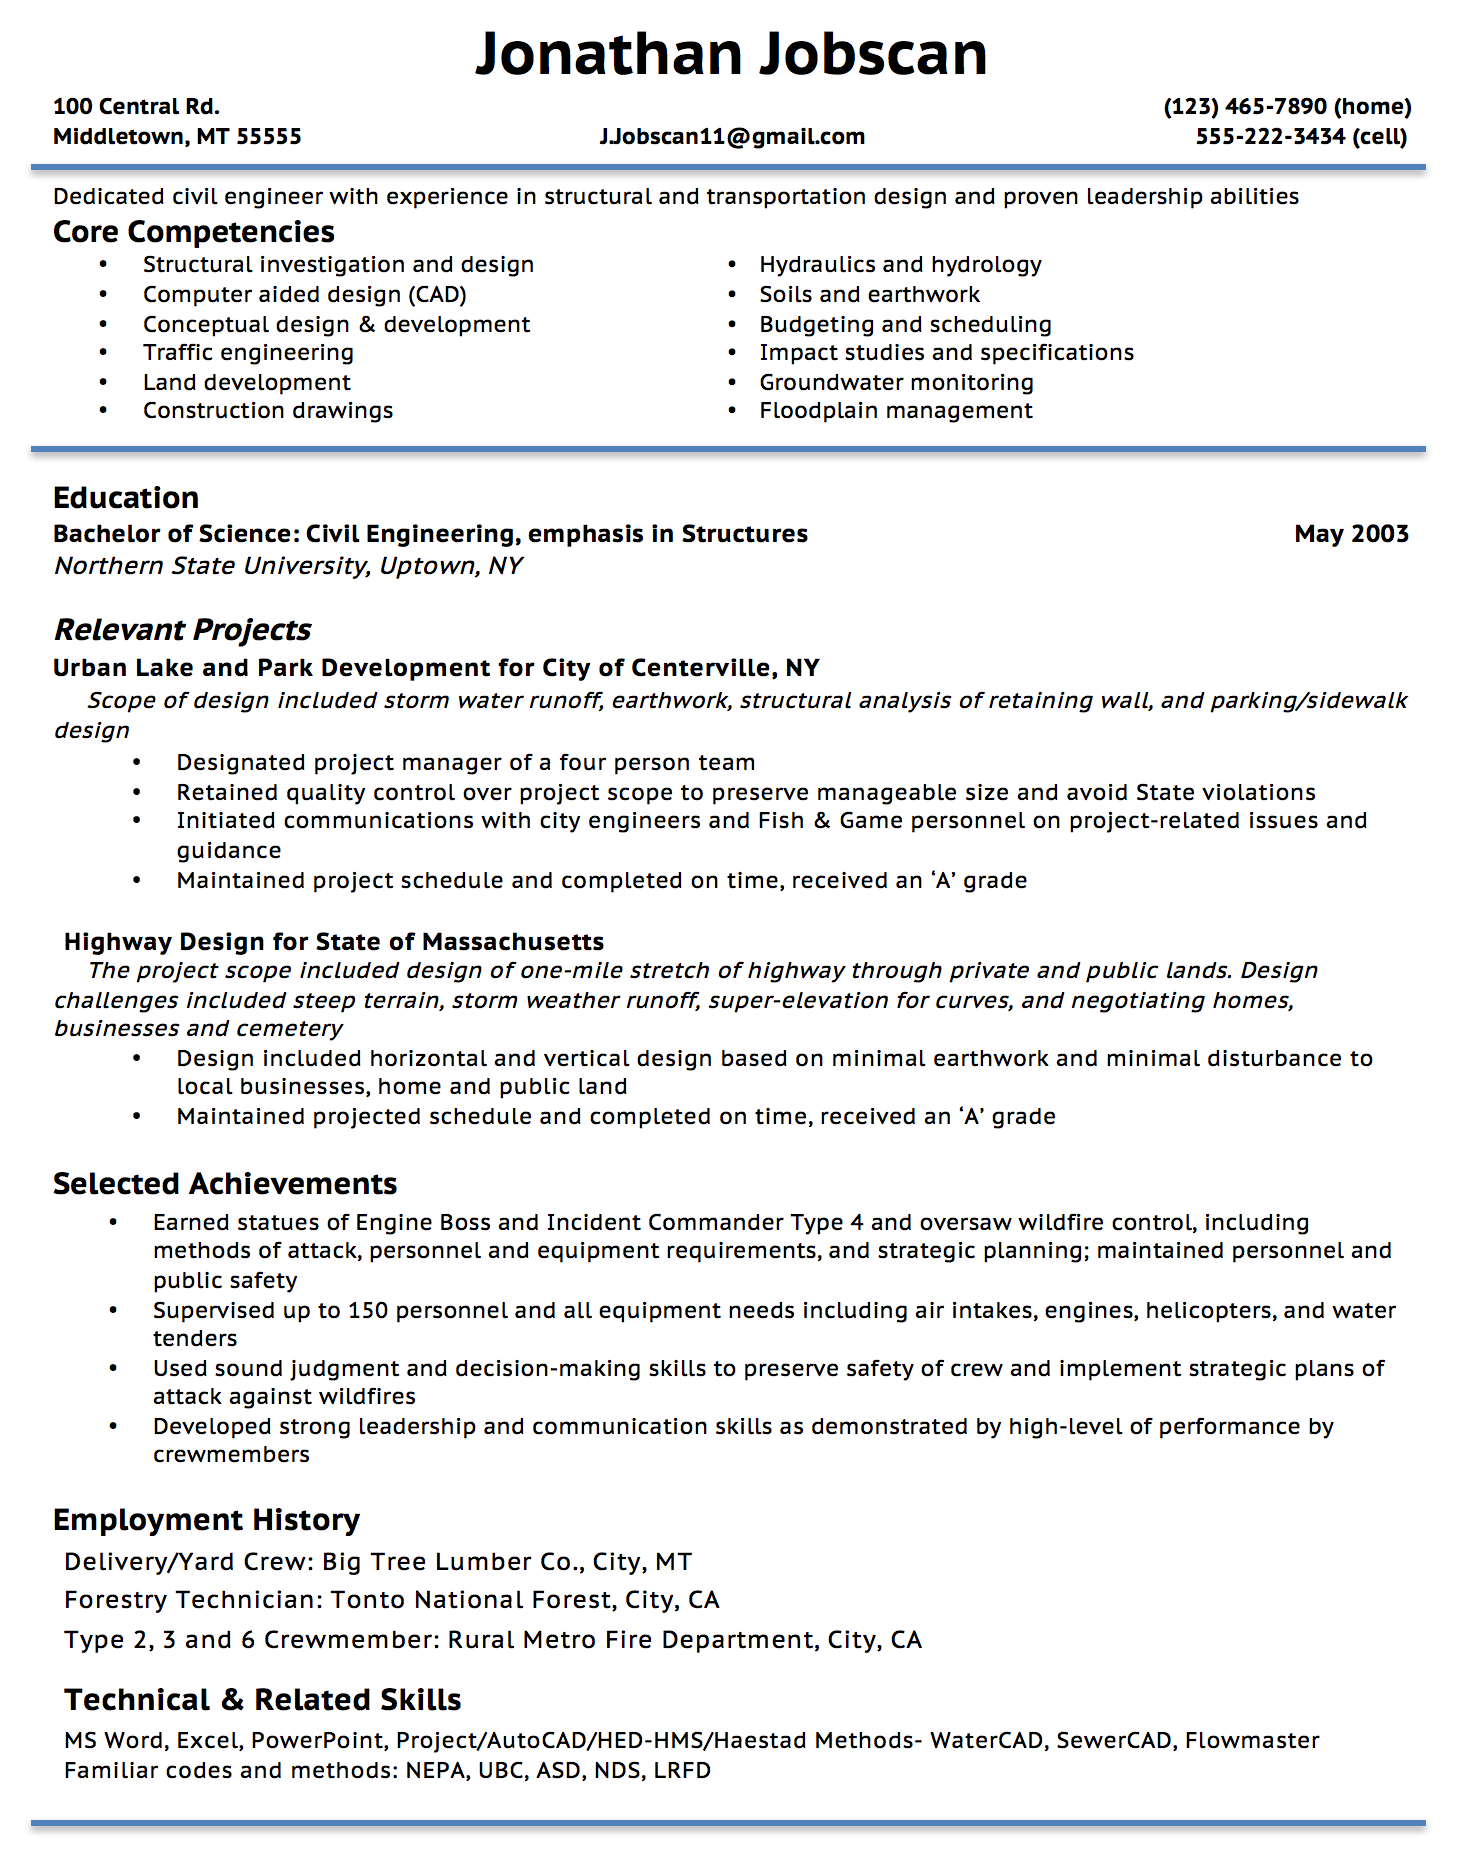 Opposenewapstandardsus  Mesmerizing Resume Writing Guide  Jobscan With Gorgeous Example Of A Functional Resume Format With Nice Resume Workshop Also How To Write A Resume For The First Time In Addition Resume Career Objective And Social Worker Resume As Well As Creative Resume Templates Free Additionally Resume For A Job From Jobscanco With Opposenewapstandardsus  Gorgeous Resume Writing Guide  Jobscan With Nice Example Of A Functional Resume Format And Mesmerizing Resume Workshop Also How To Write A Resume For The First Time In Addition Resume Career Objective From Jobscanco